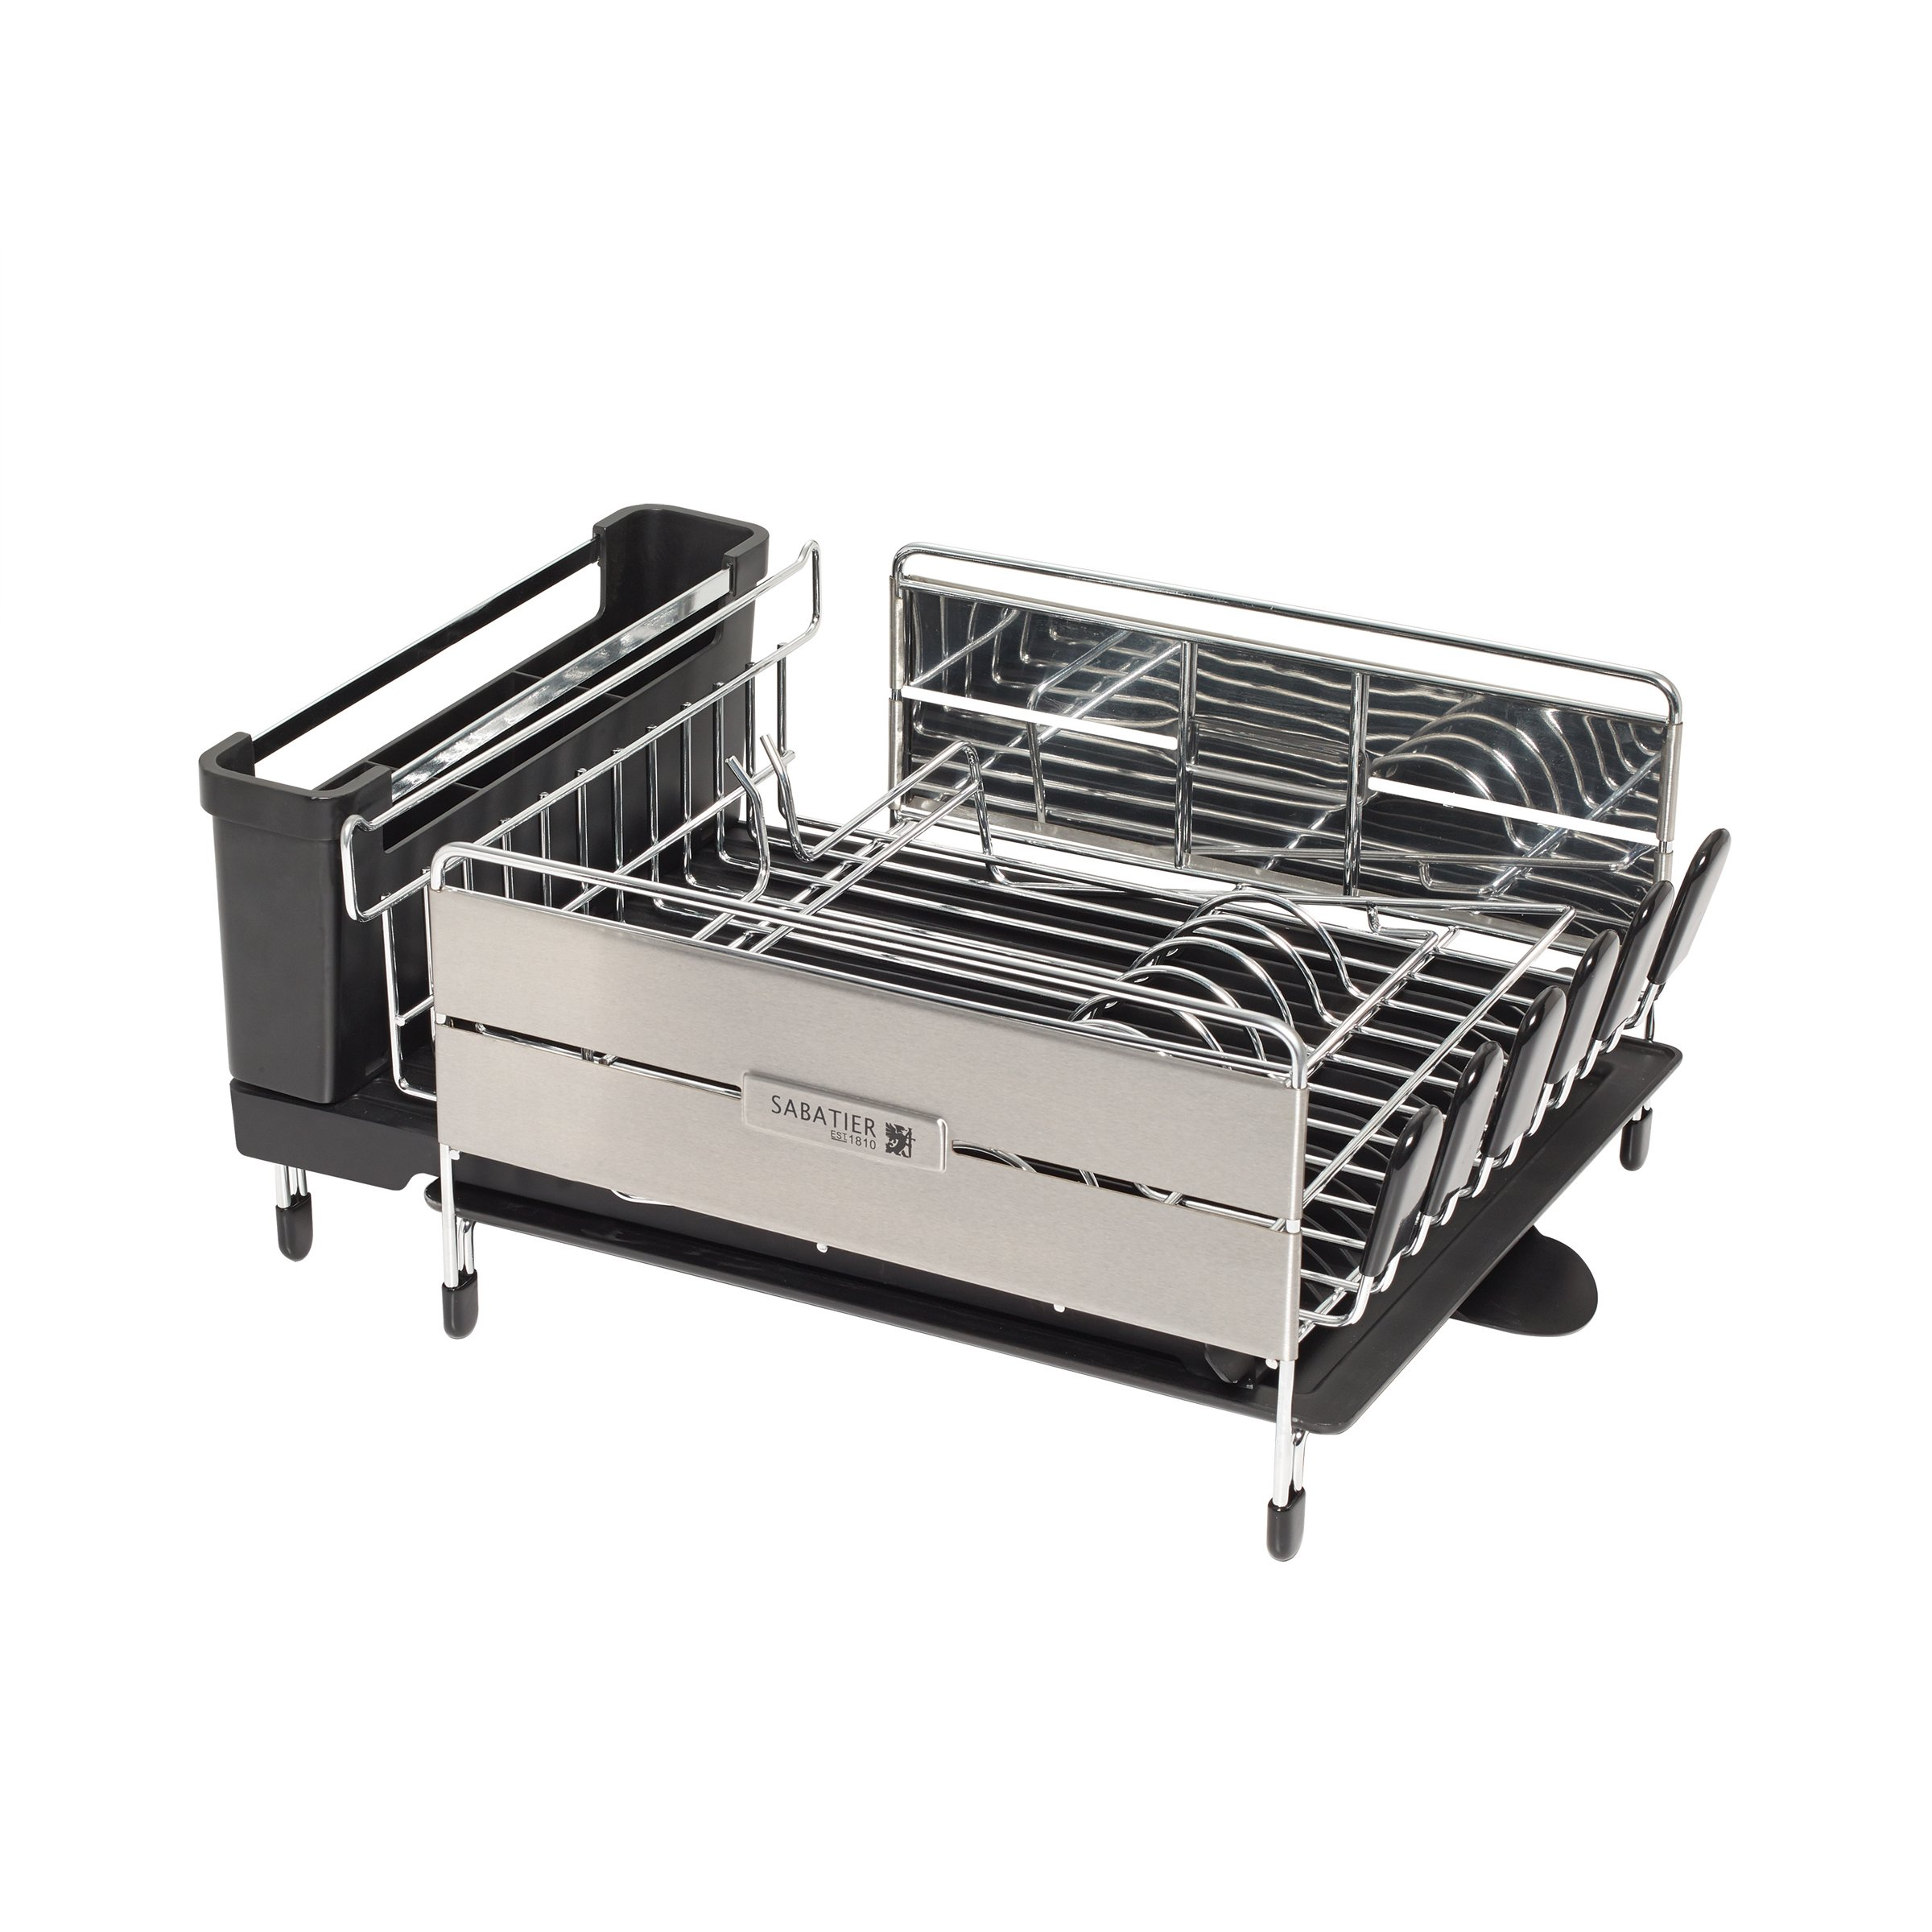 Space Saving Dish Rack Sabatier Expandable Compact Dish Rack With Wine Glass Holder